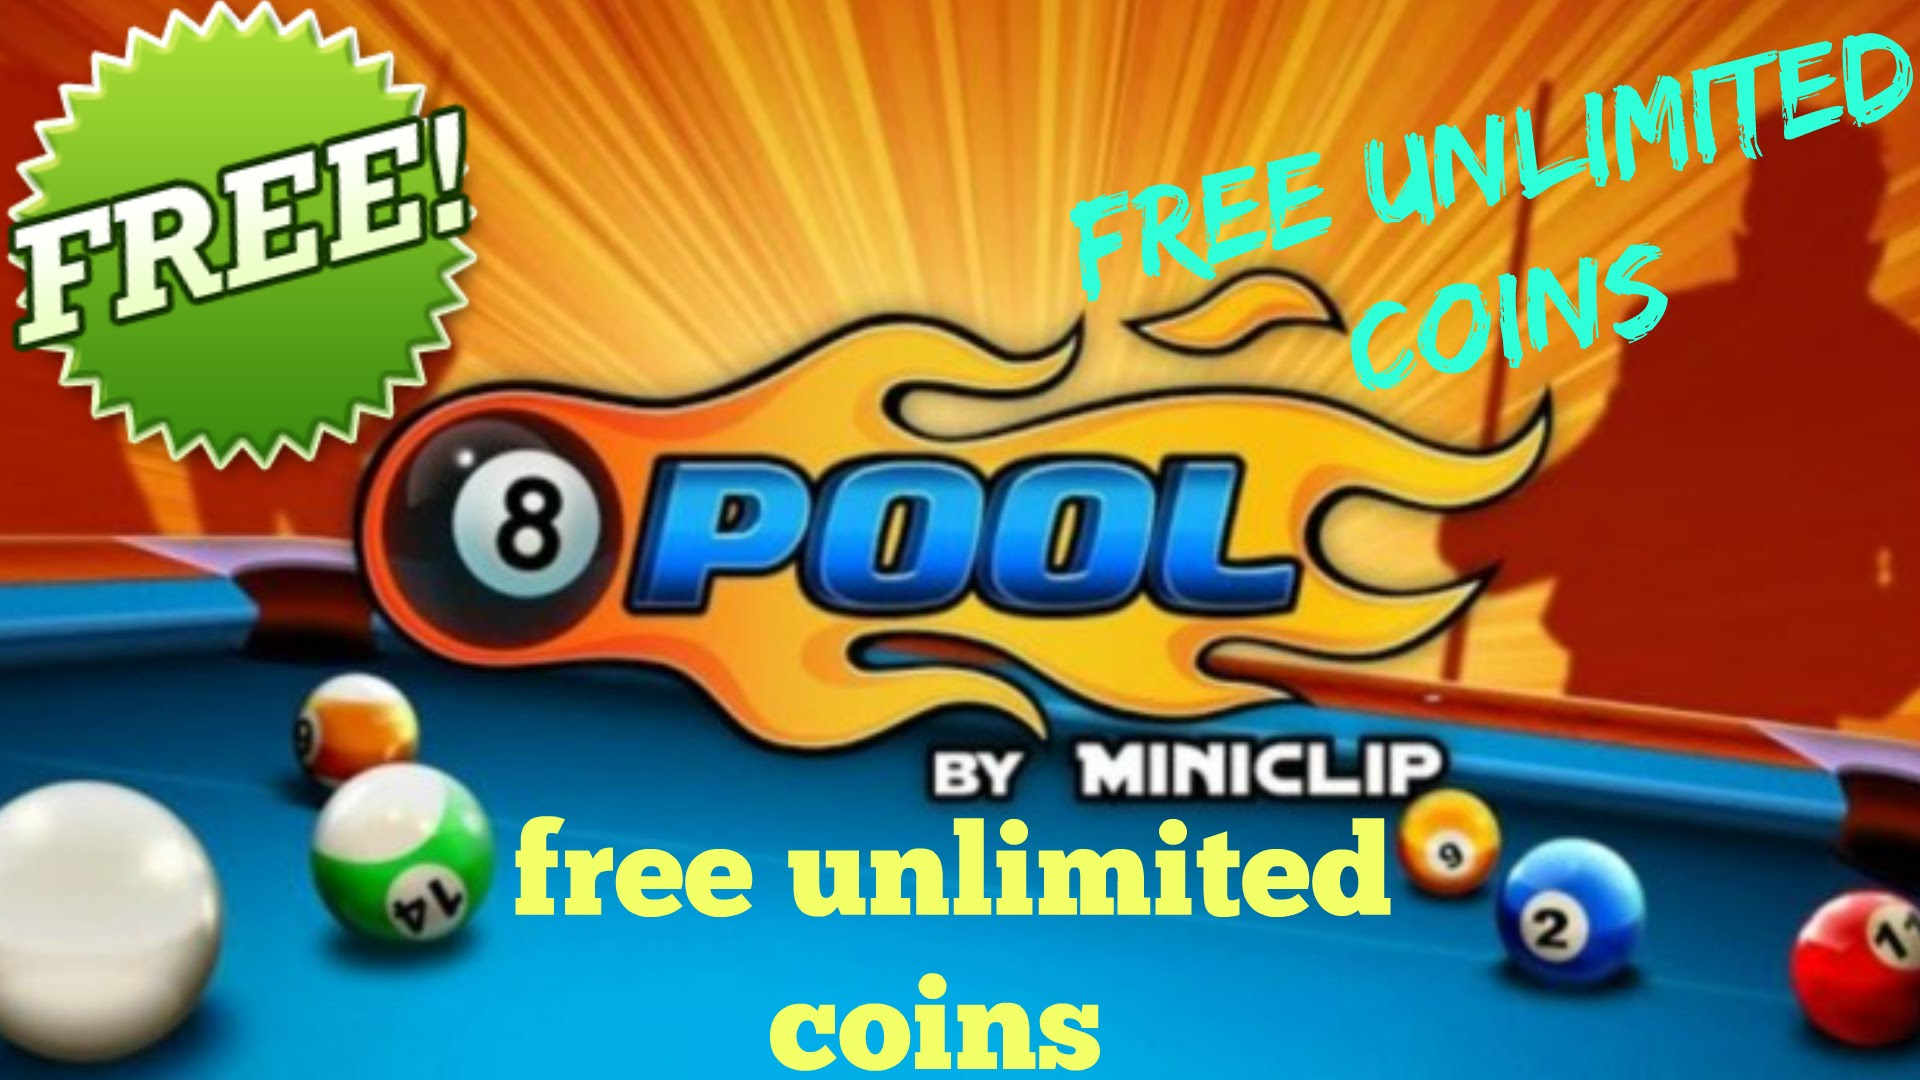 NEW METHOD – MY.TAPJOY.COM 8 BALL POOL – UNLIMITED Cash and Coins